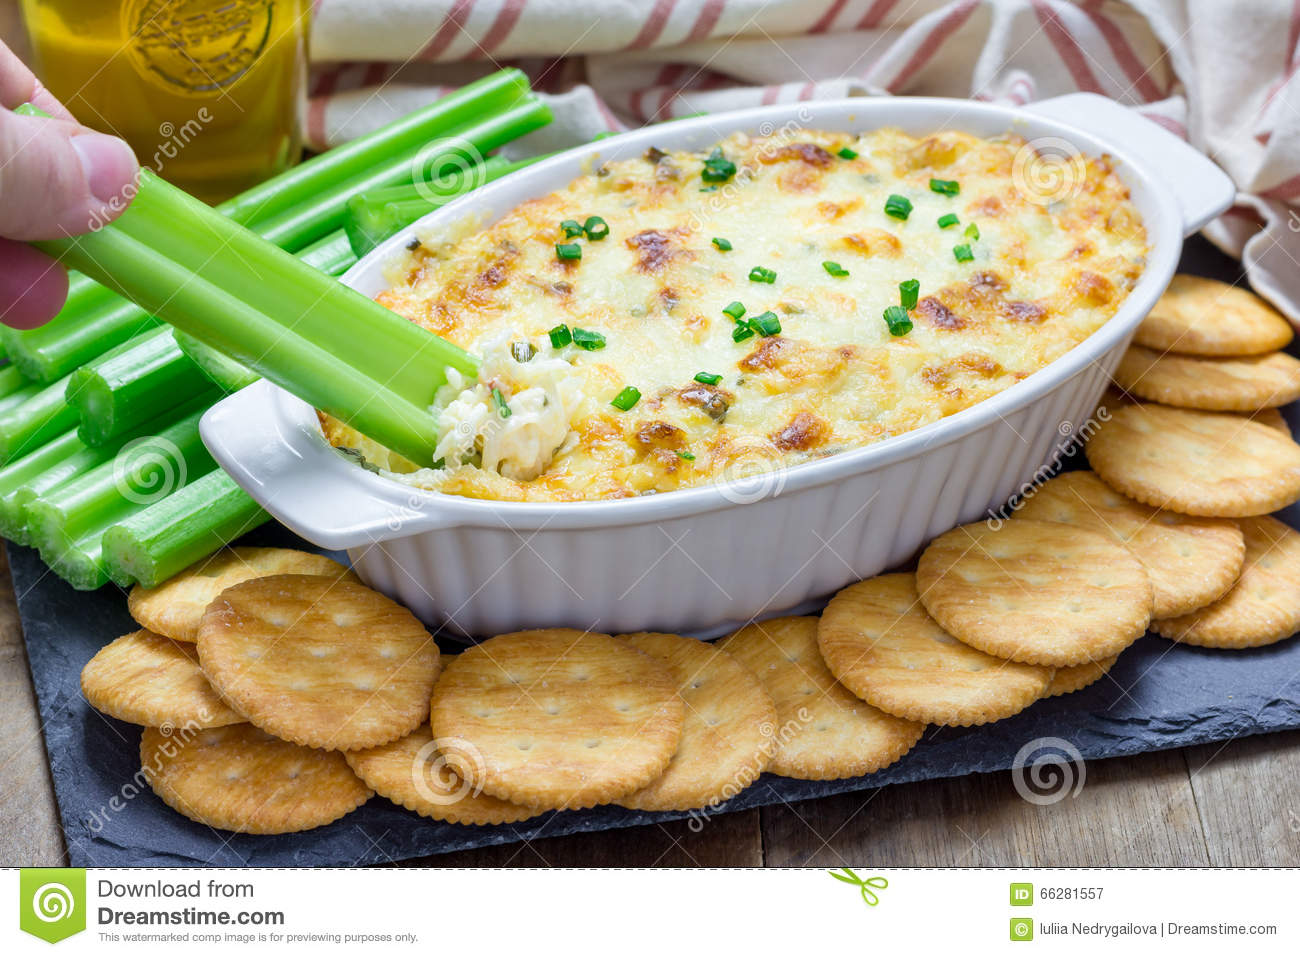 Baked Crab Dip Served With Celery Sticks And Crackers Stock Photo